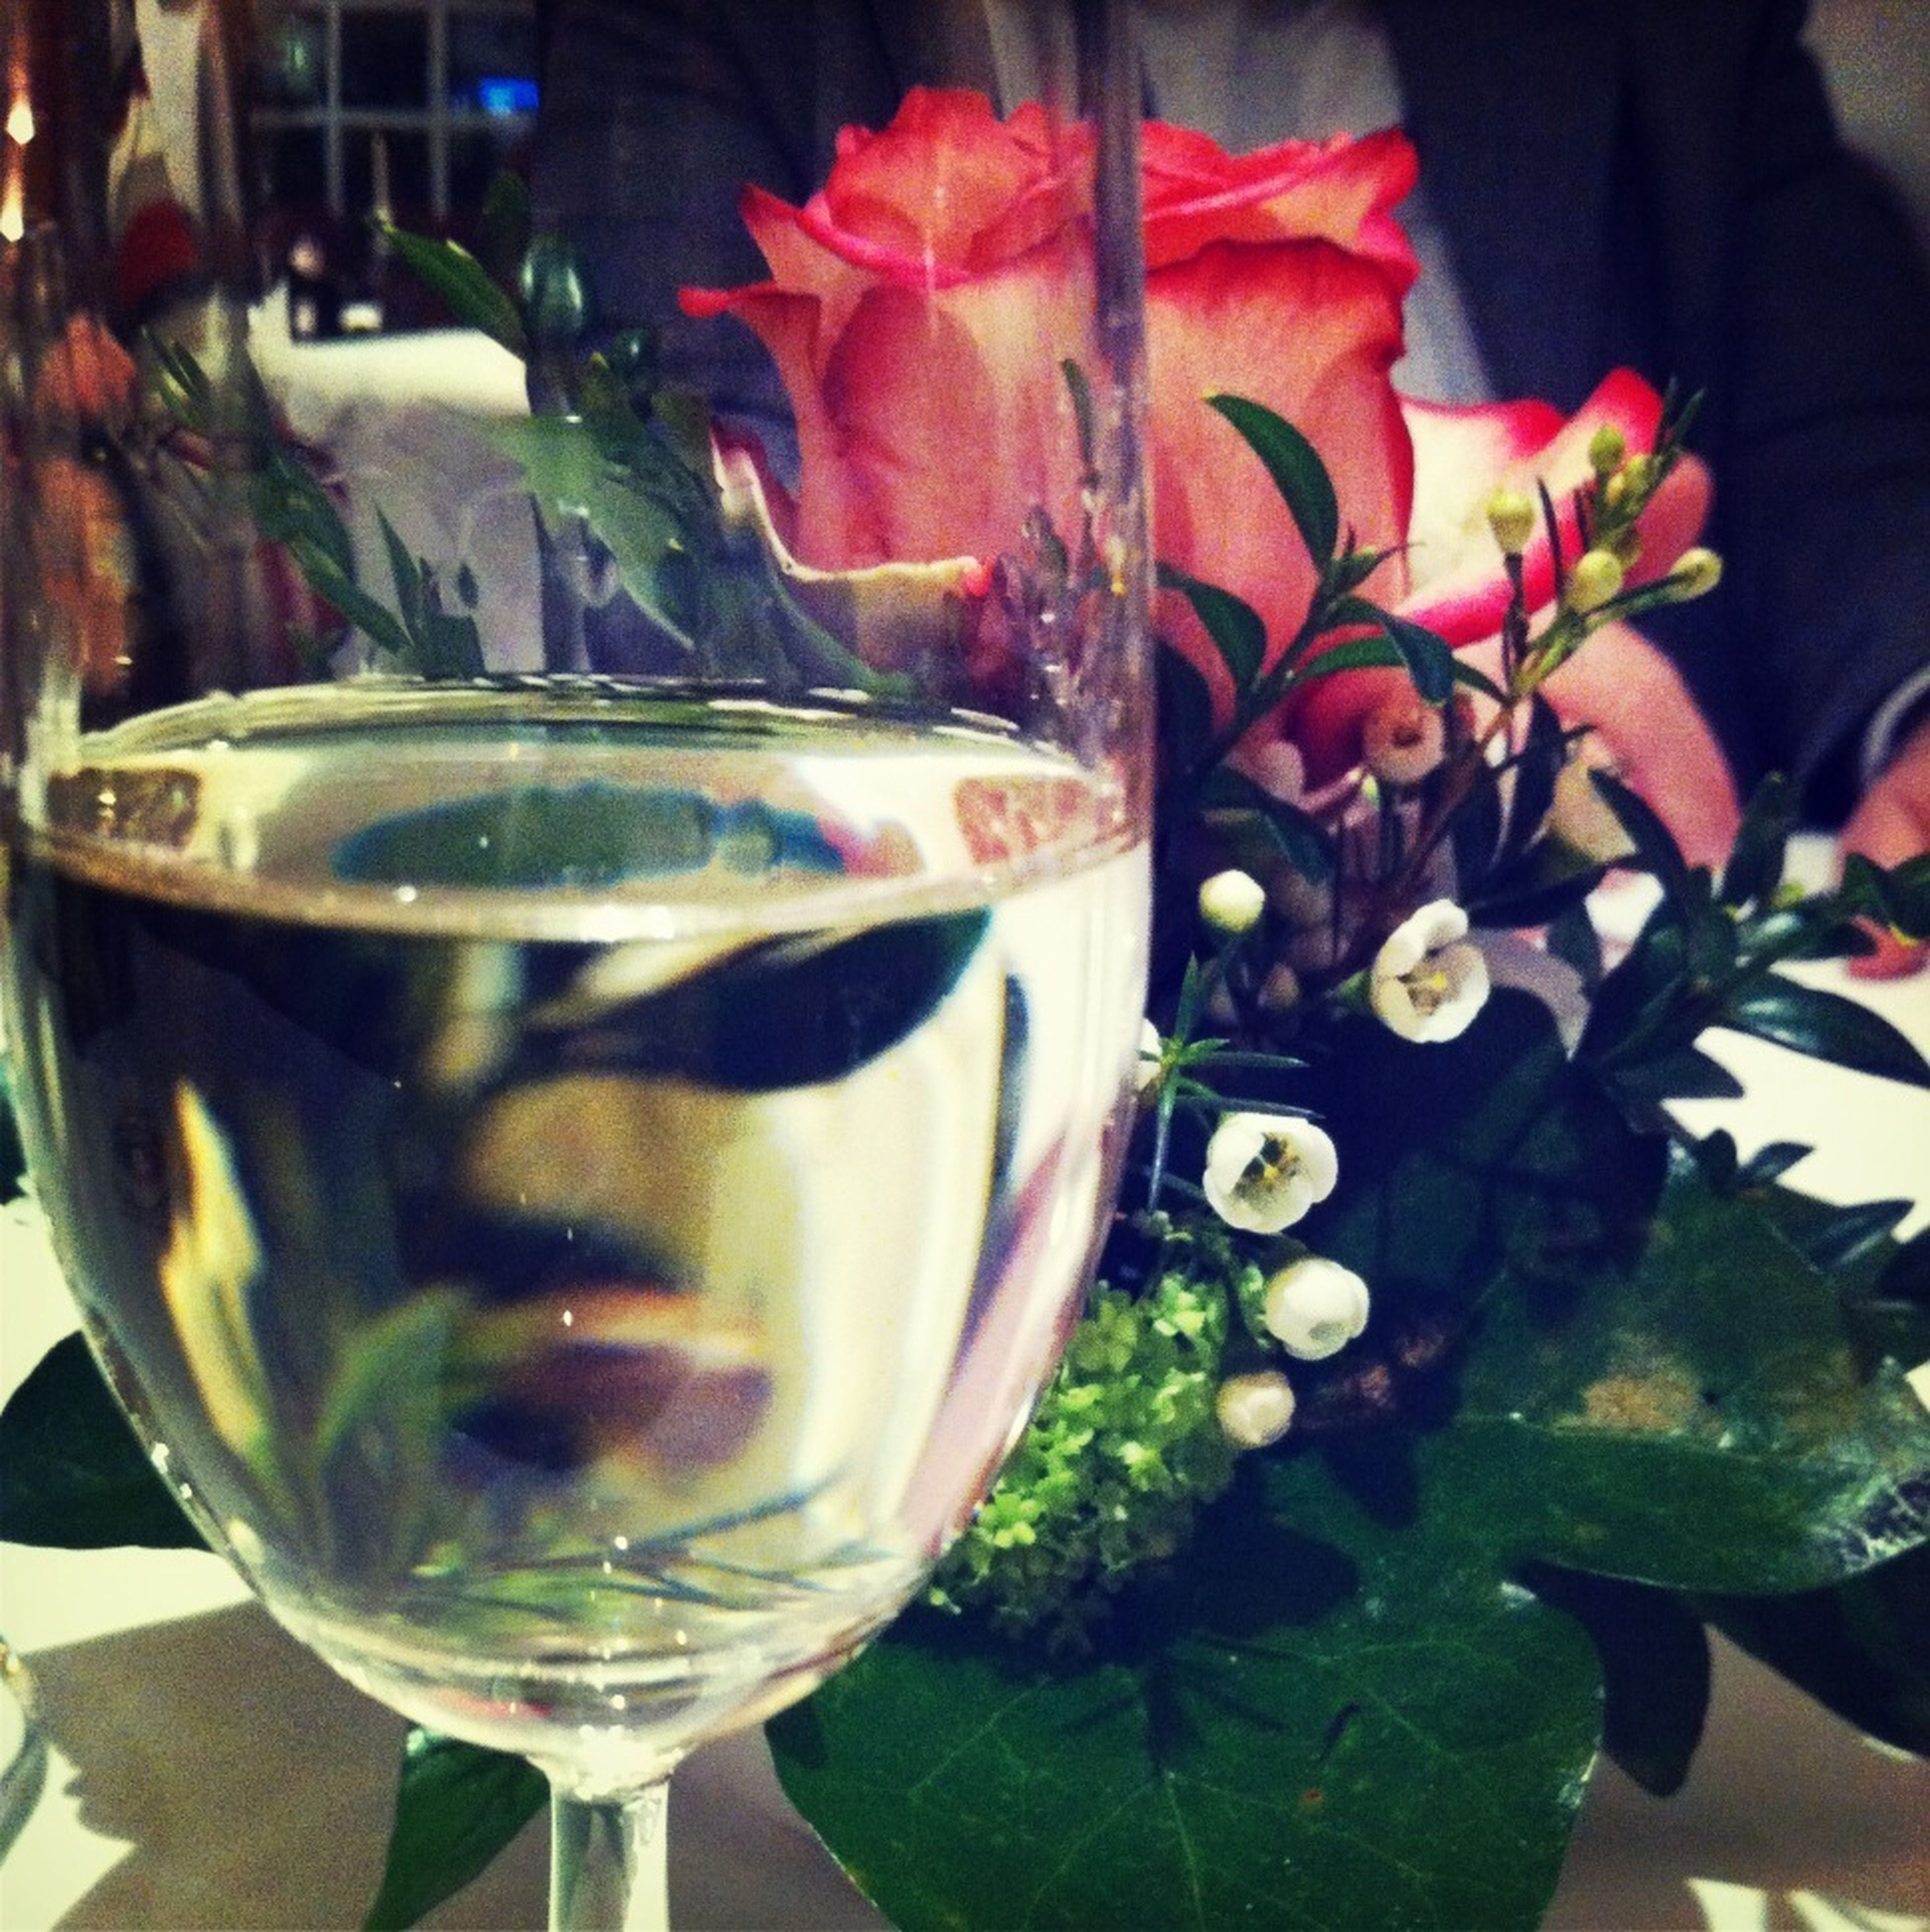 freshness, drink, drinking glass, food and drink, table, indoors, glass - material, refreshment, transparent, still life, close-up, glass, wineglass, alcohol, flower, leaf, fragility, vase, drinking straw, focus on foreground